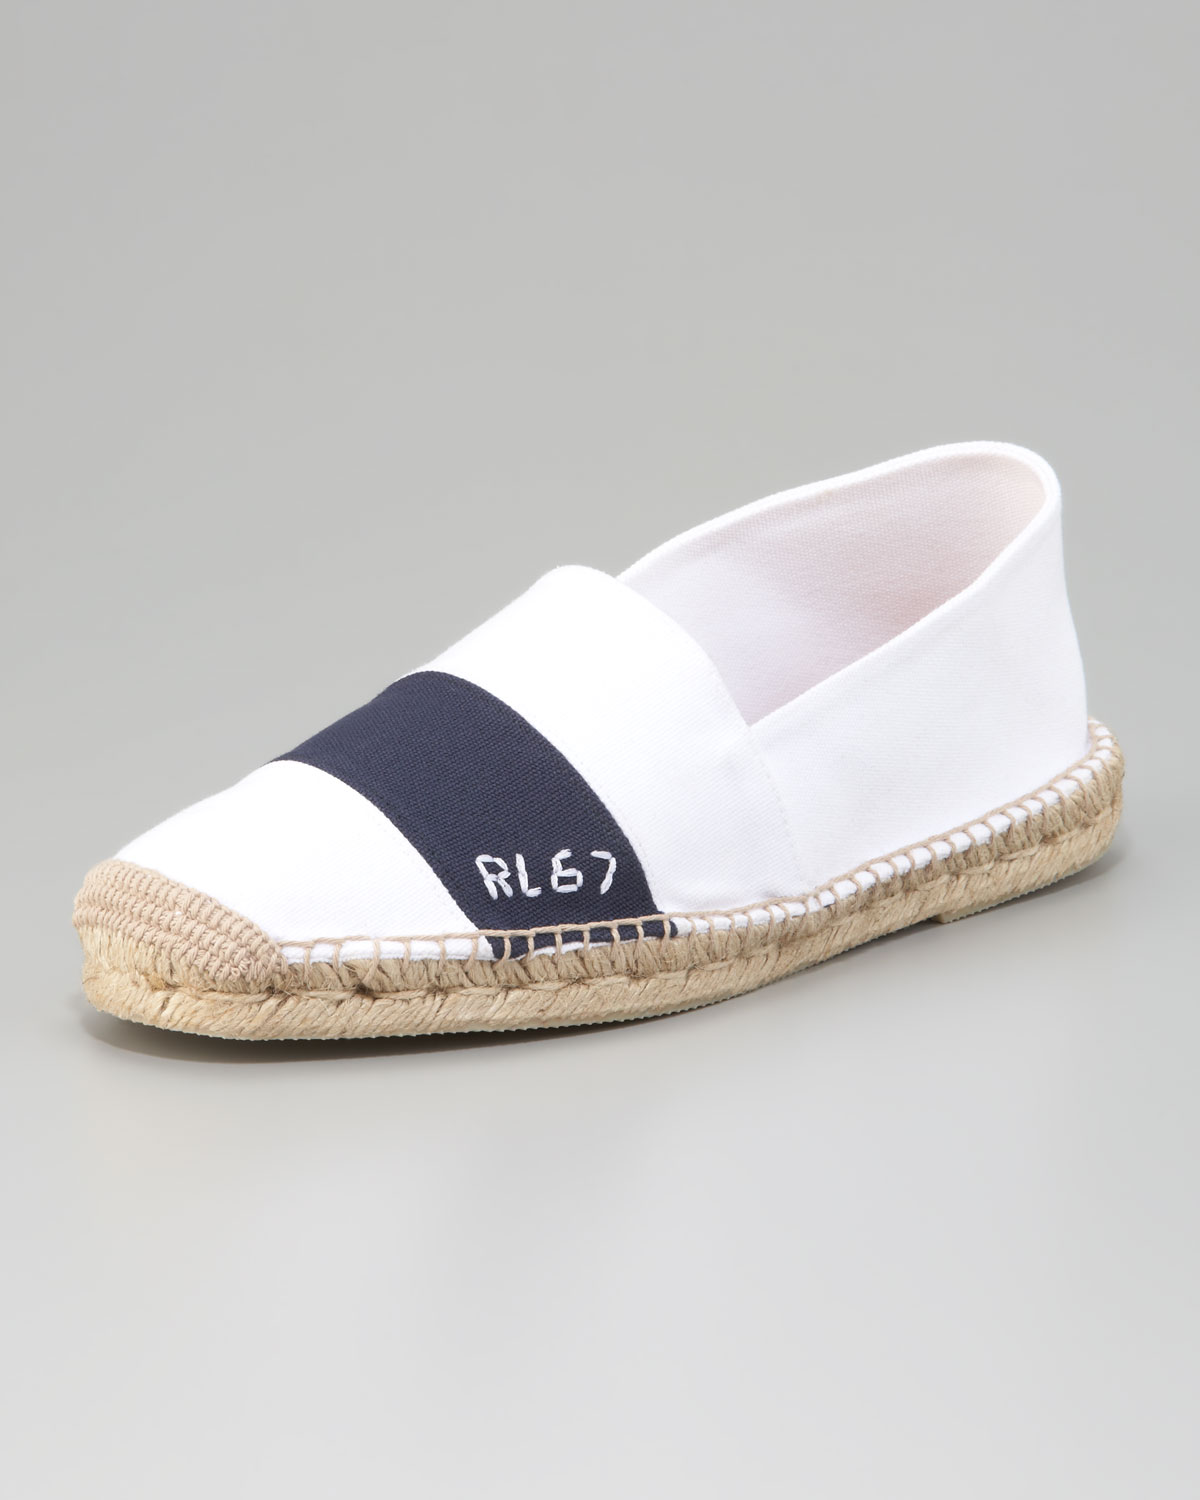 Lyst - Ralph Lauren Striped Canvas Espadrille in White for Men ac6814273be0